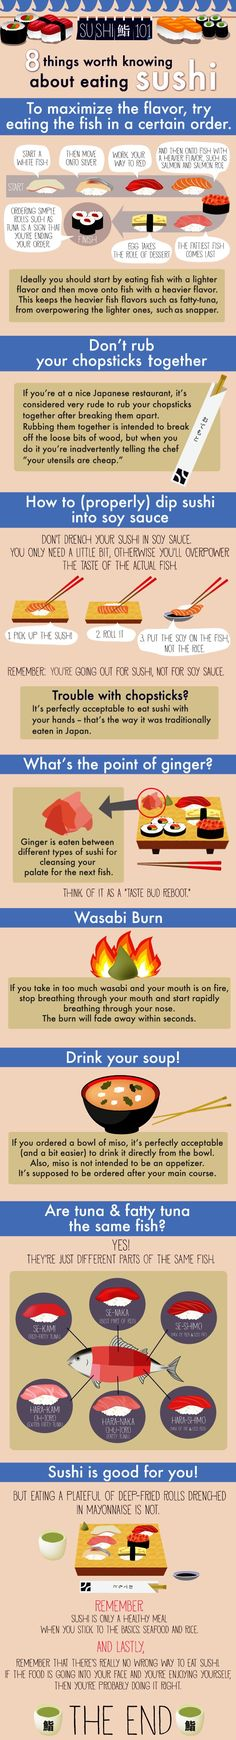 good stuff to know, even if I use ginger on my sushi... helps balance the taste of wasabi, I find...